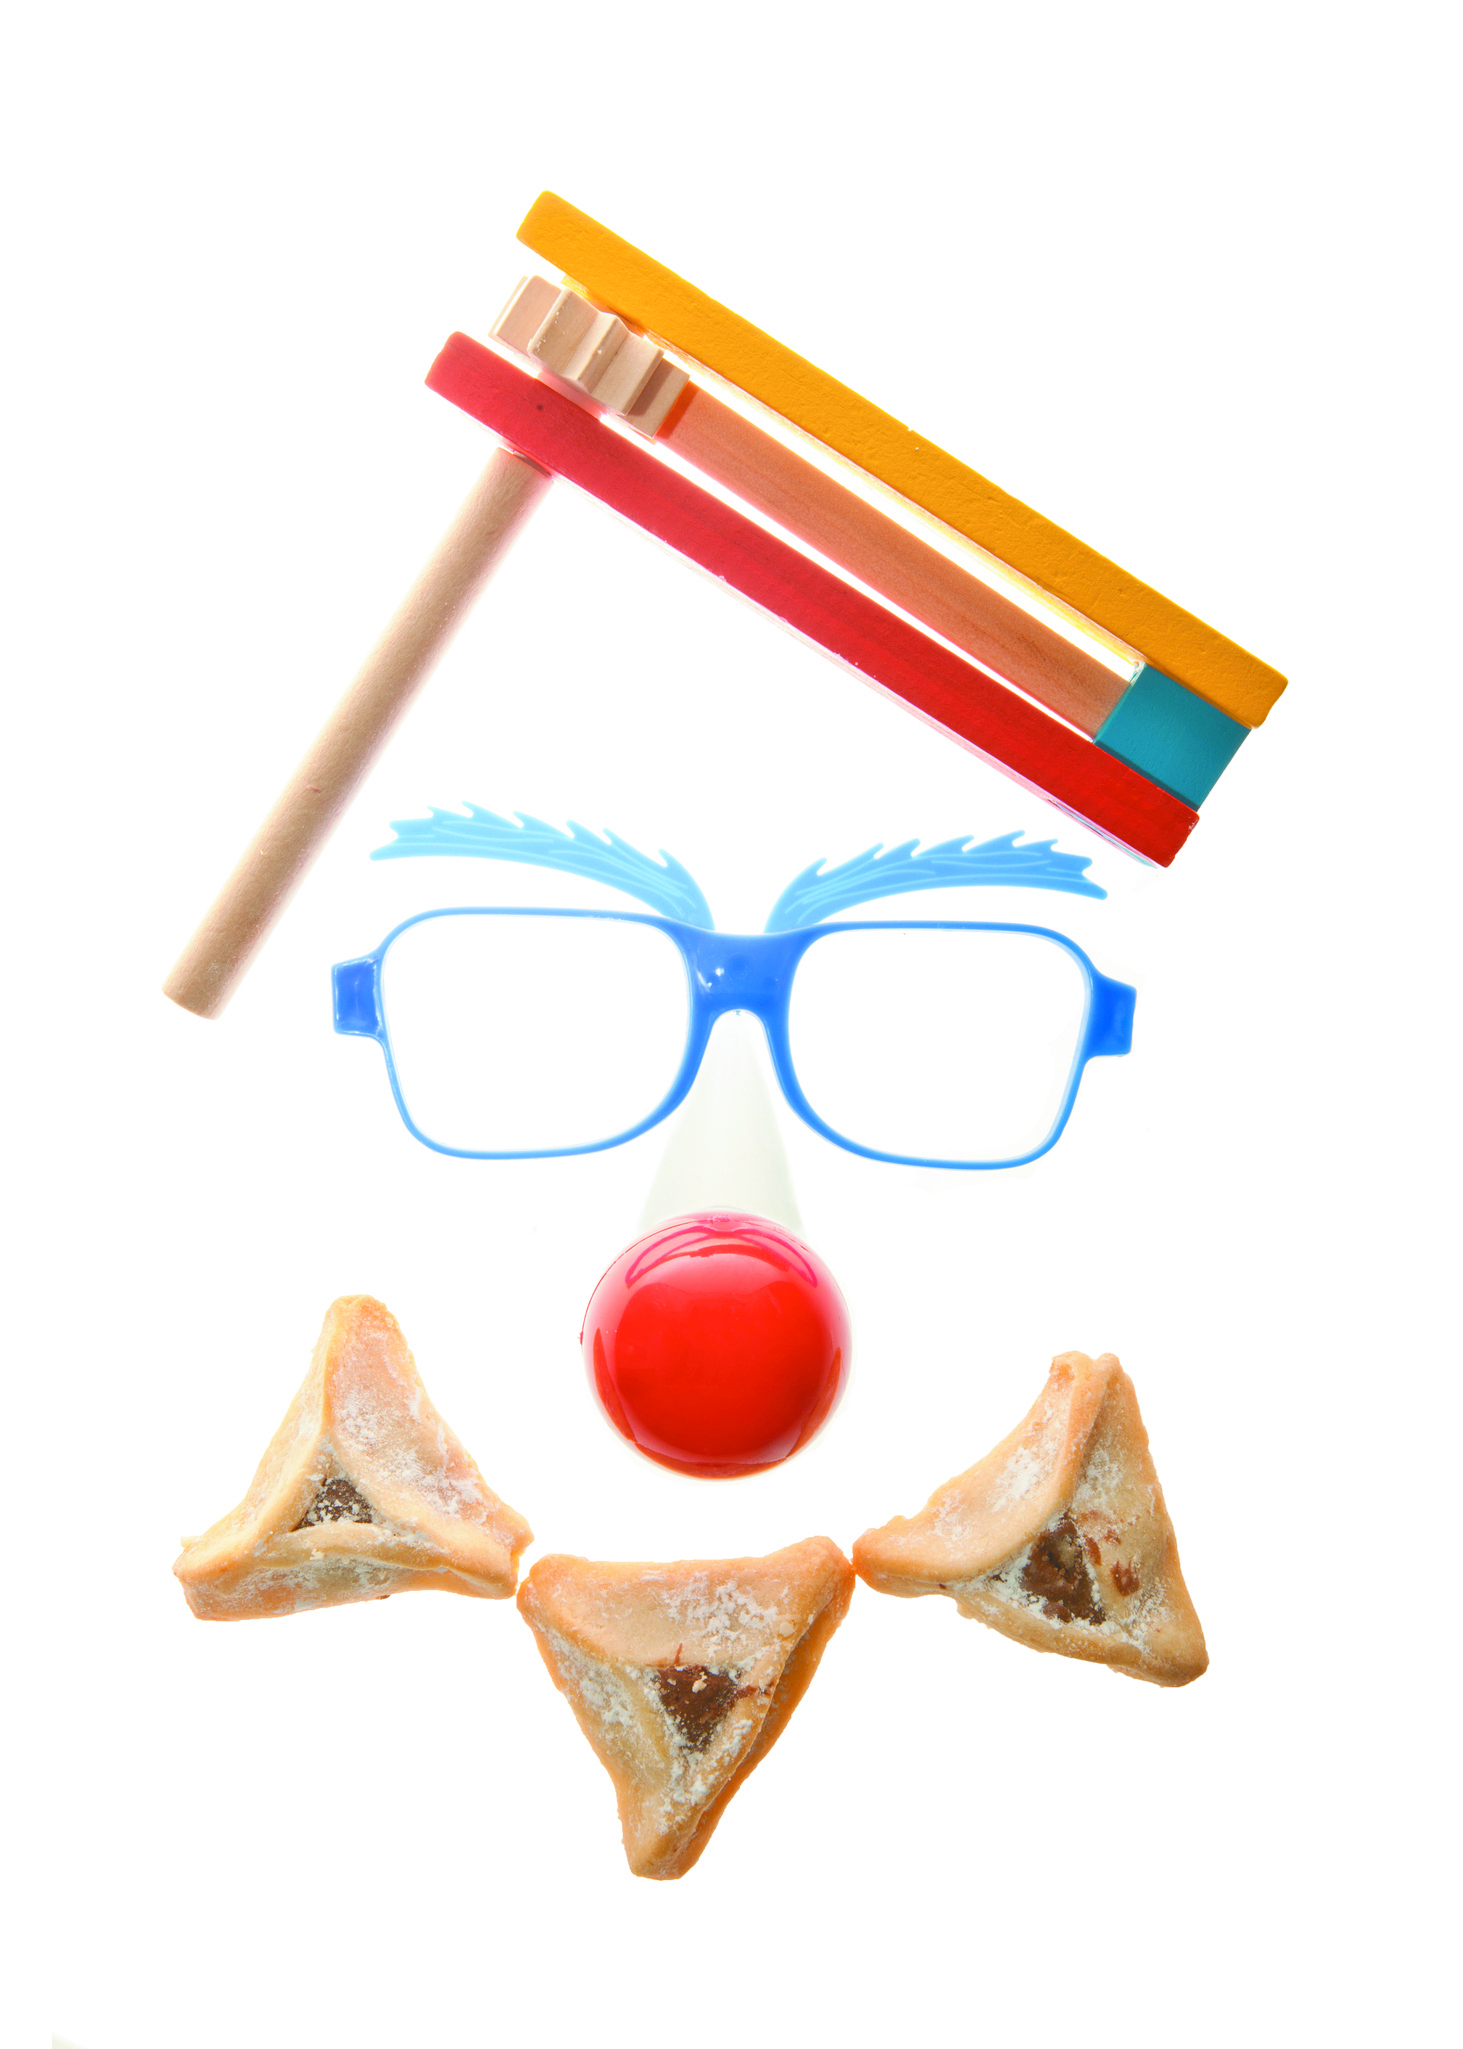 Clown's face - Purim arrangement with Hamentashen, Gragger, Funny glasses and a red nose